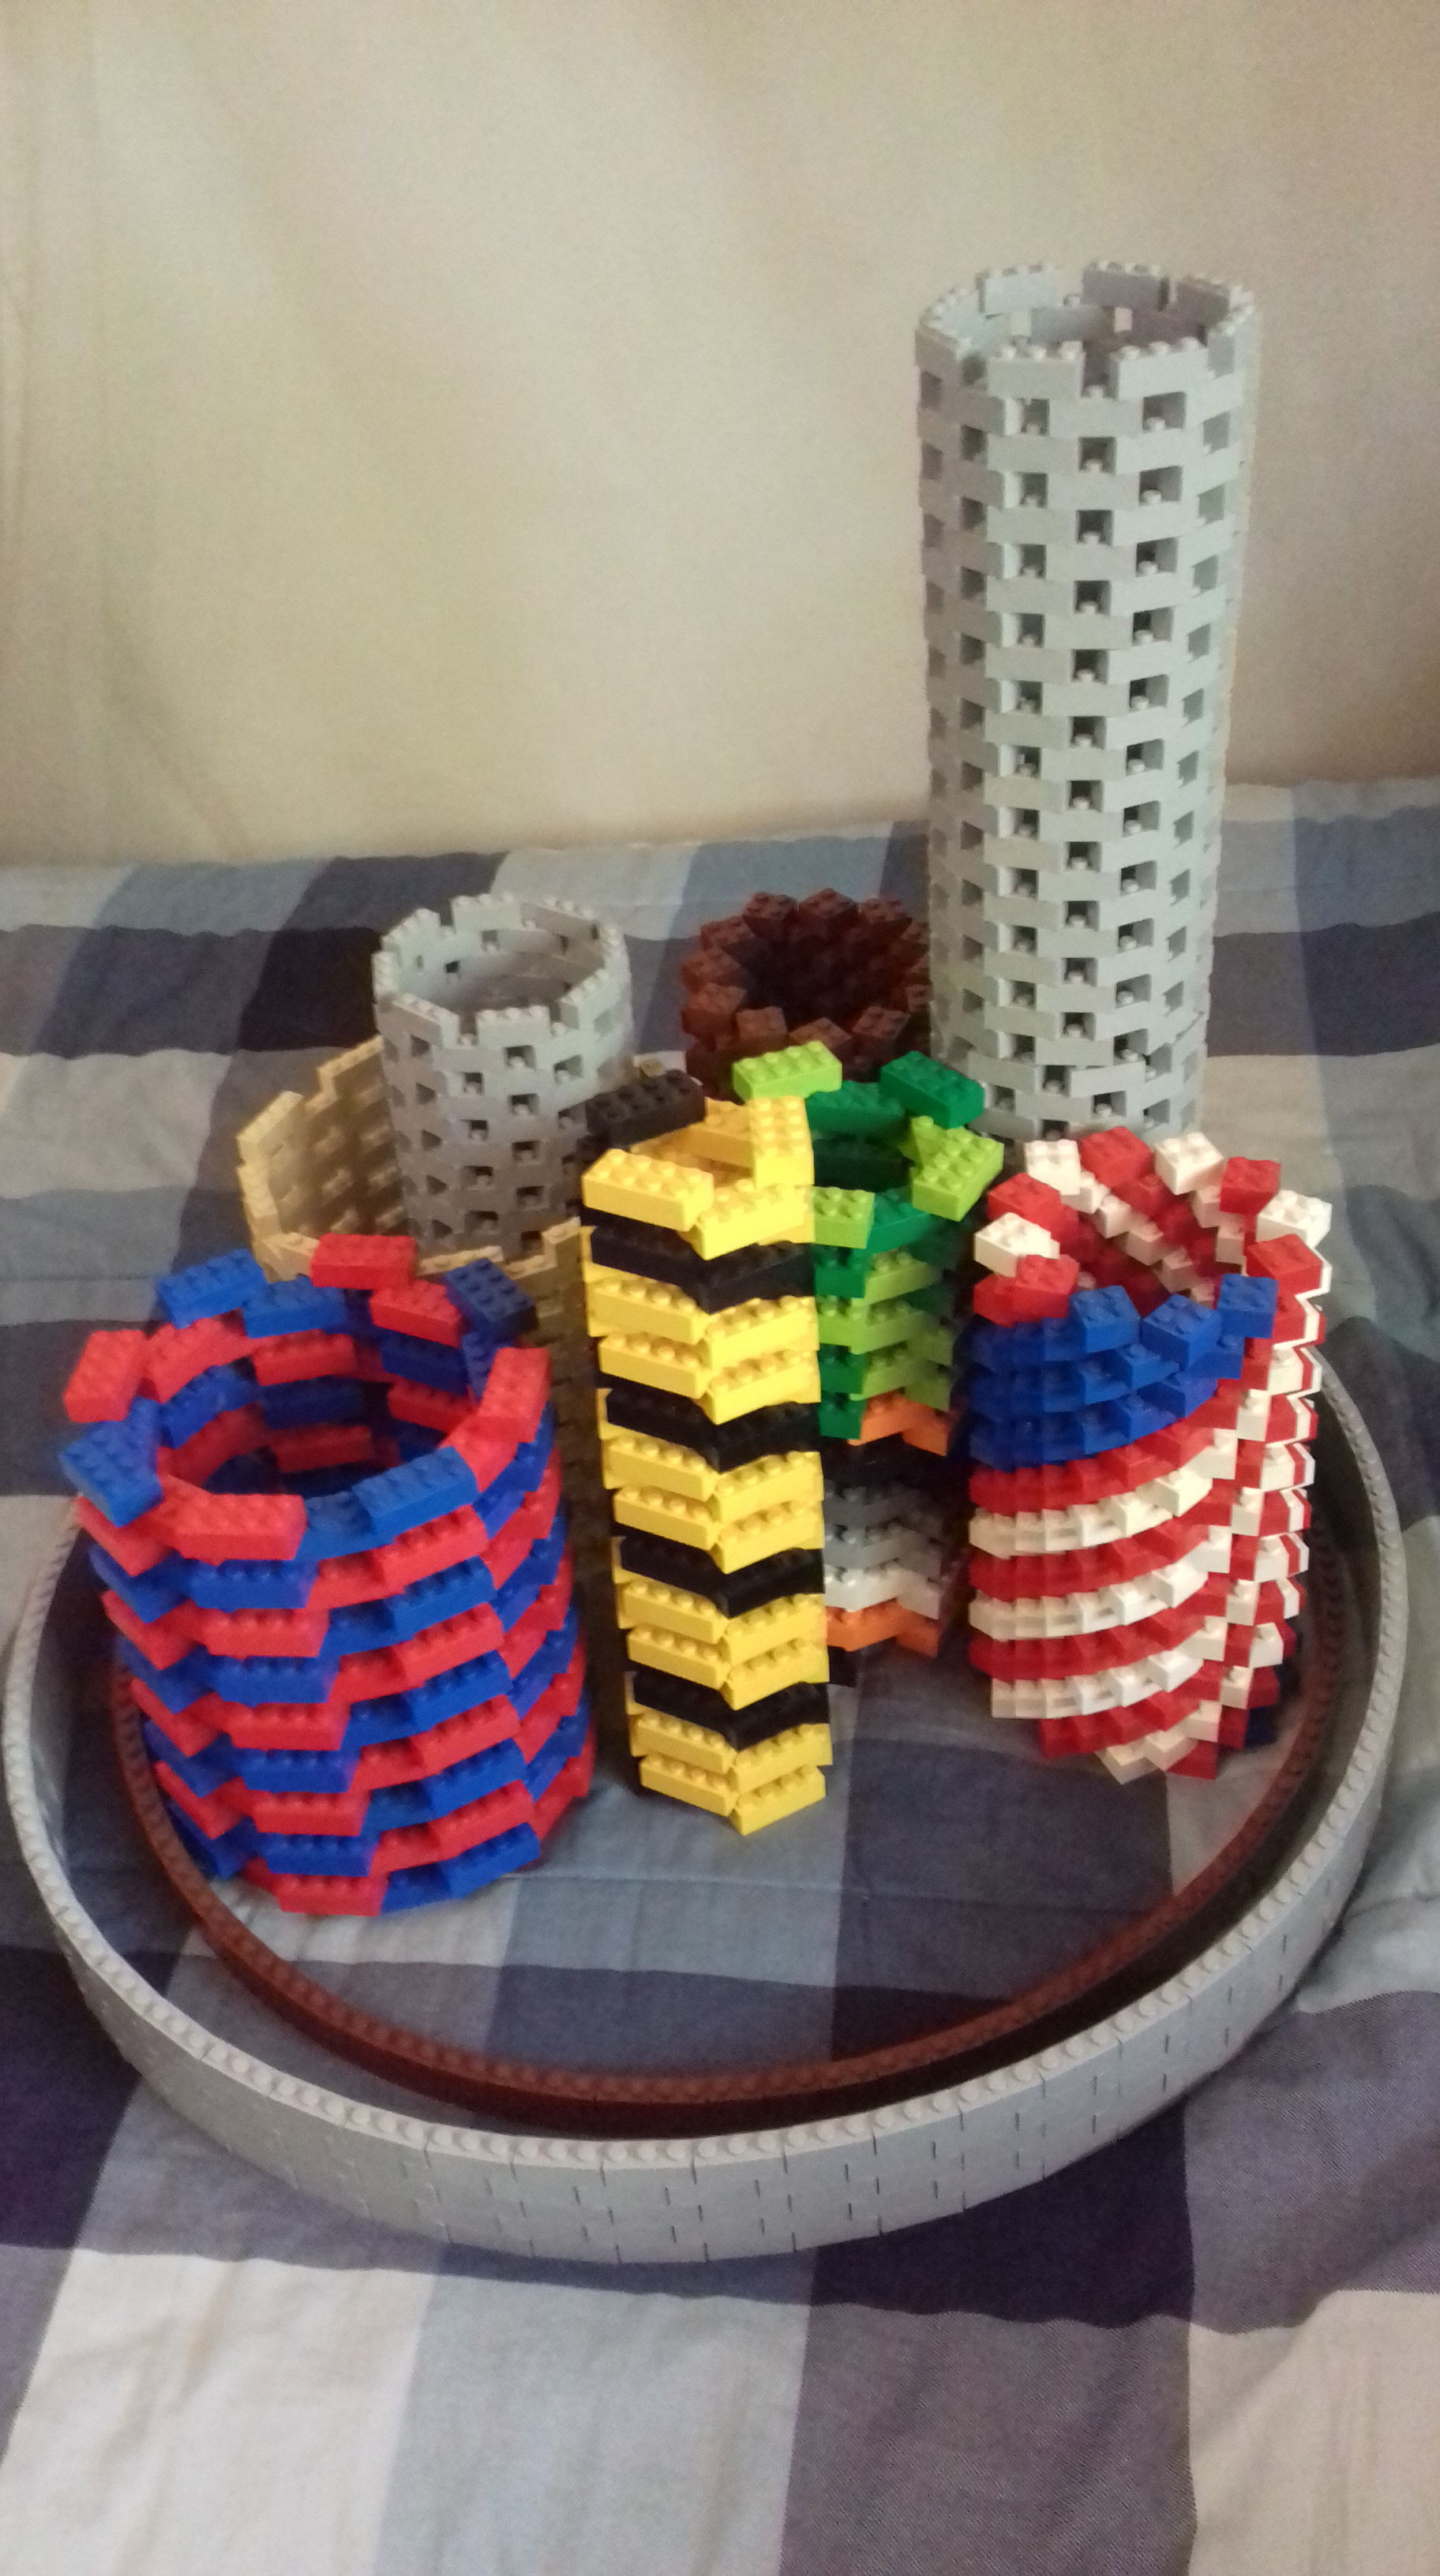 Circular Lego Structures     Legos by Chris 20161020 131218